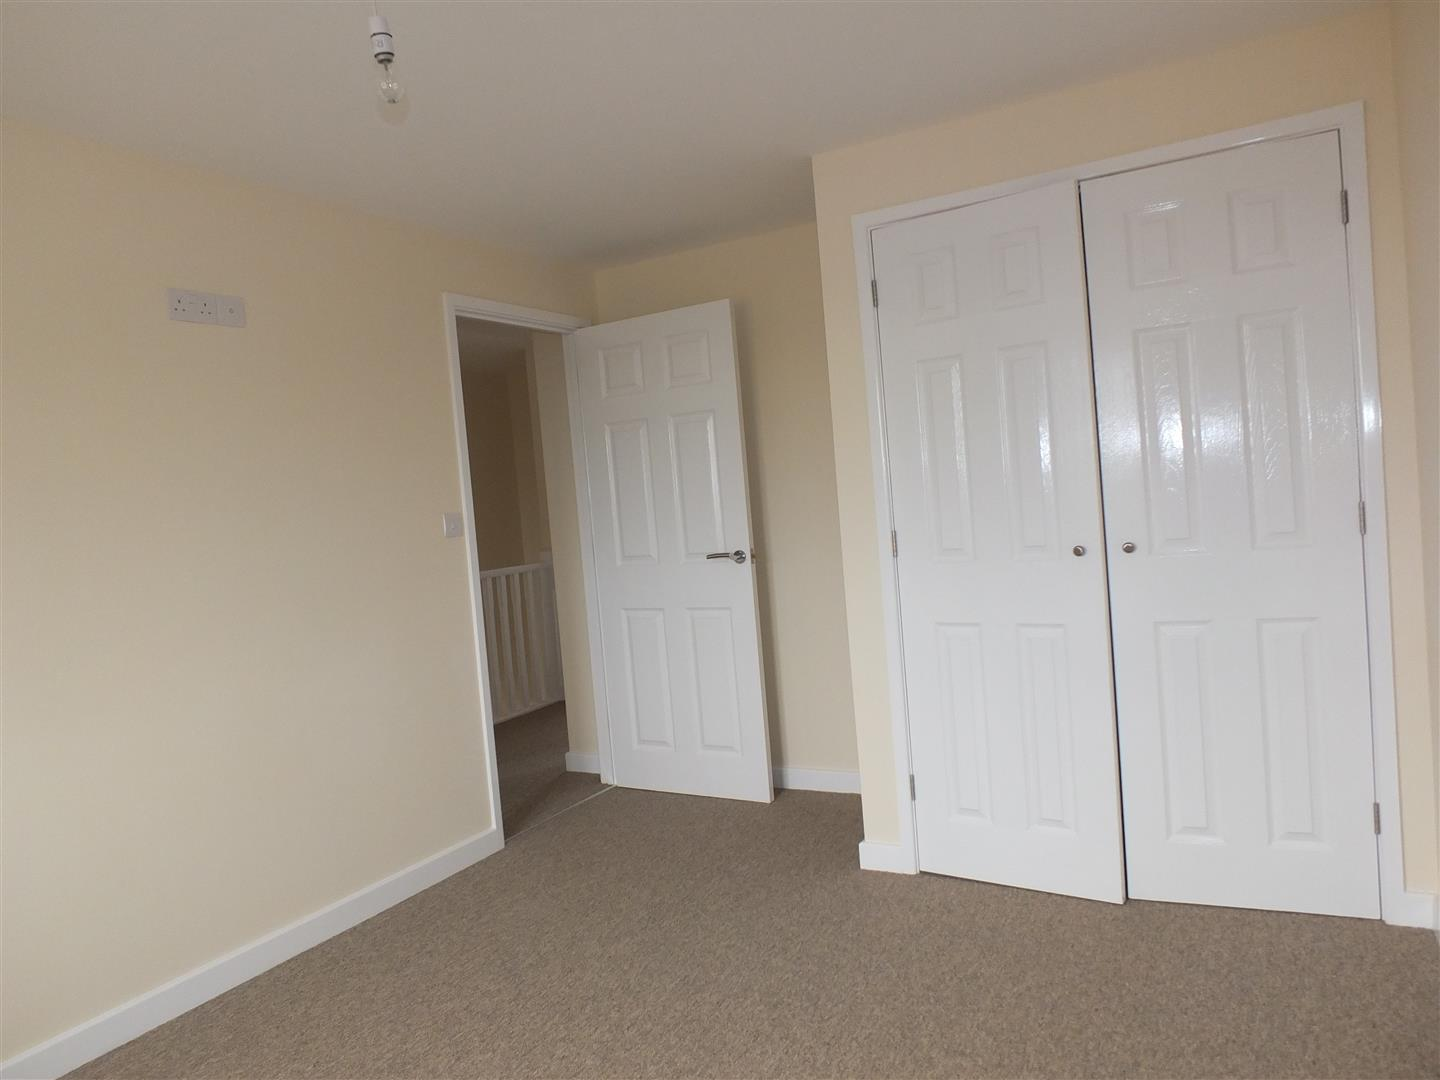 3 bed house to rent in Little London, Long Sutton  - Property Image 1